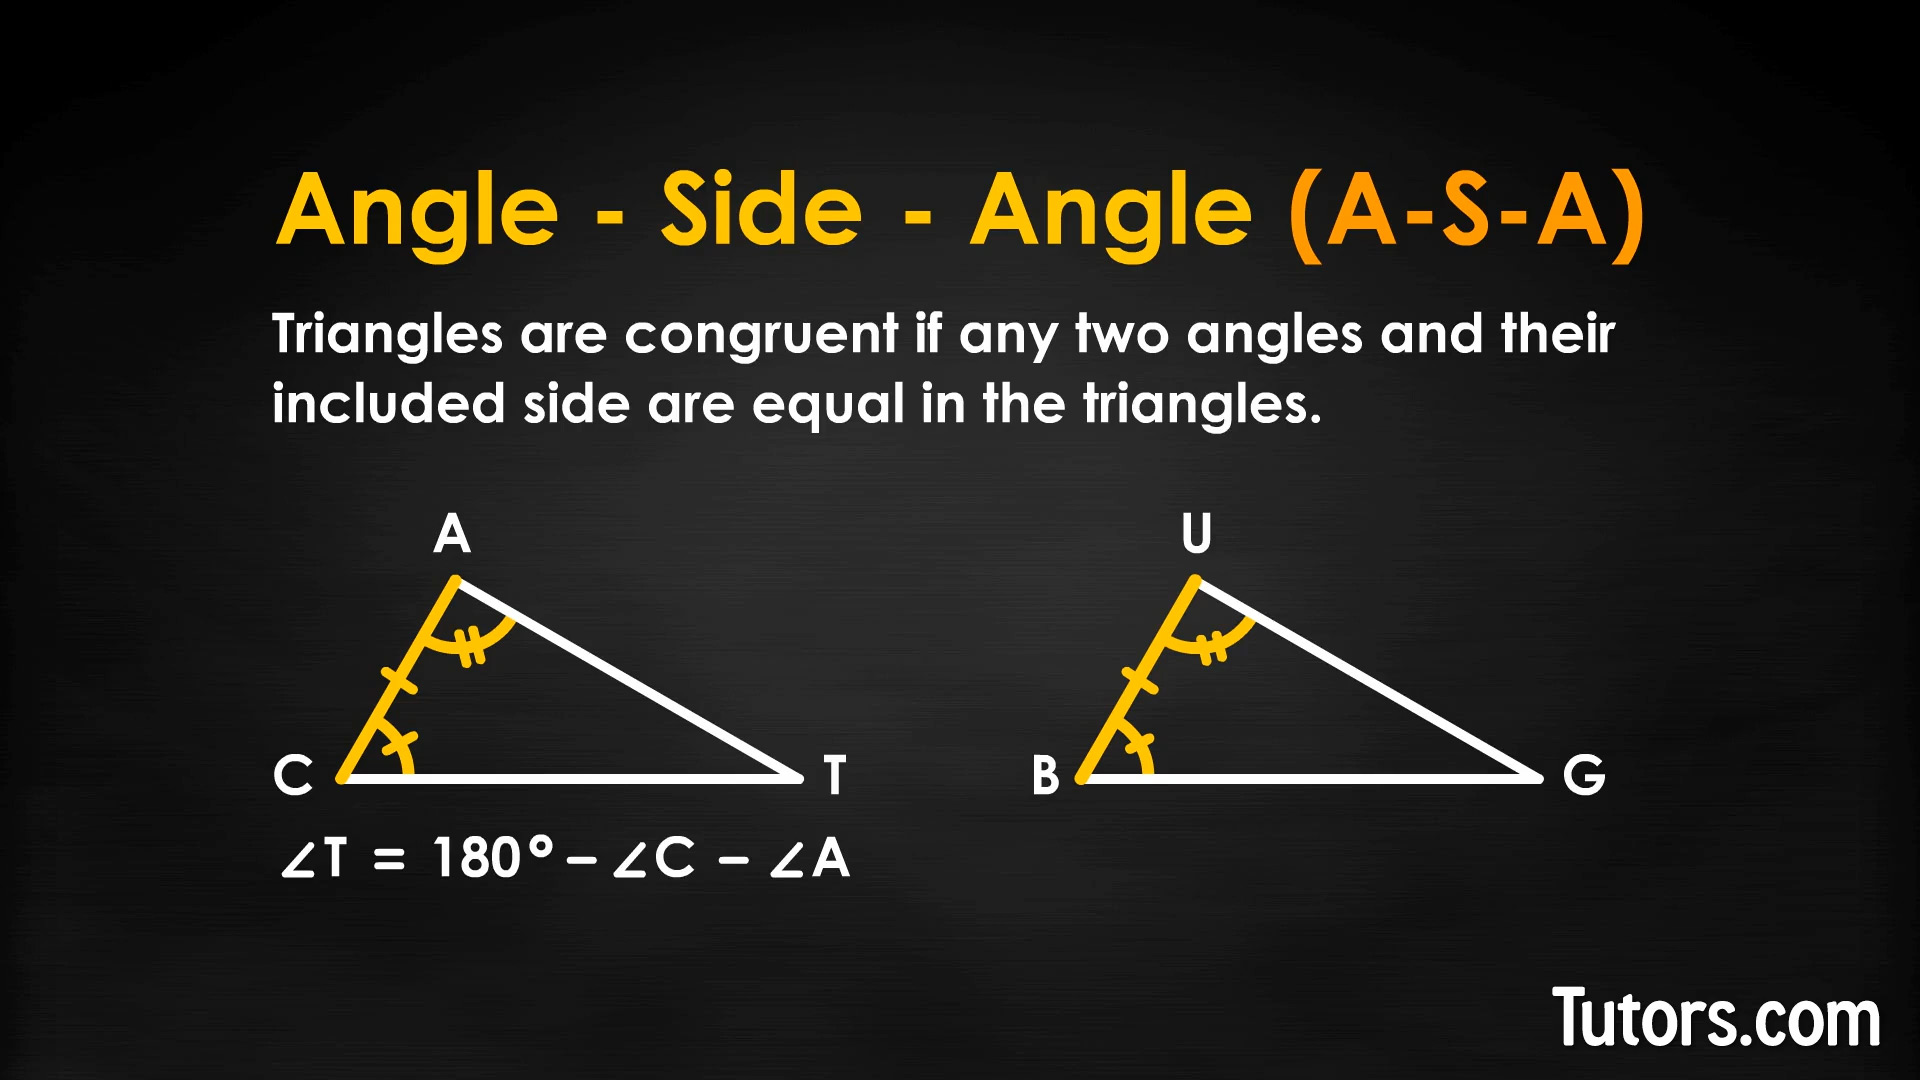 Triangle Congruence Theorems Sas Asa Sss Postulates Video